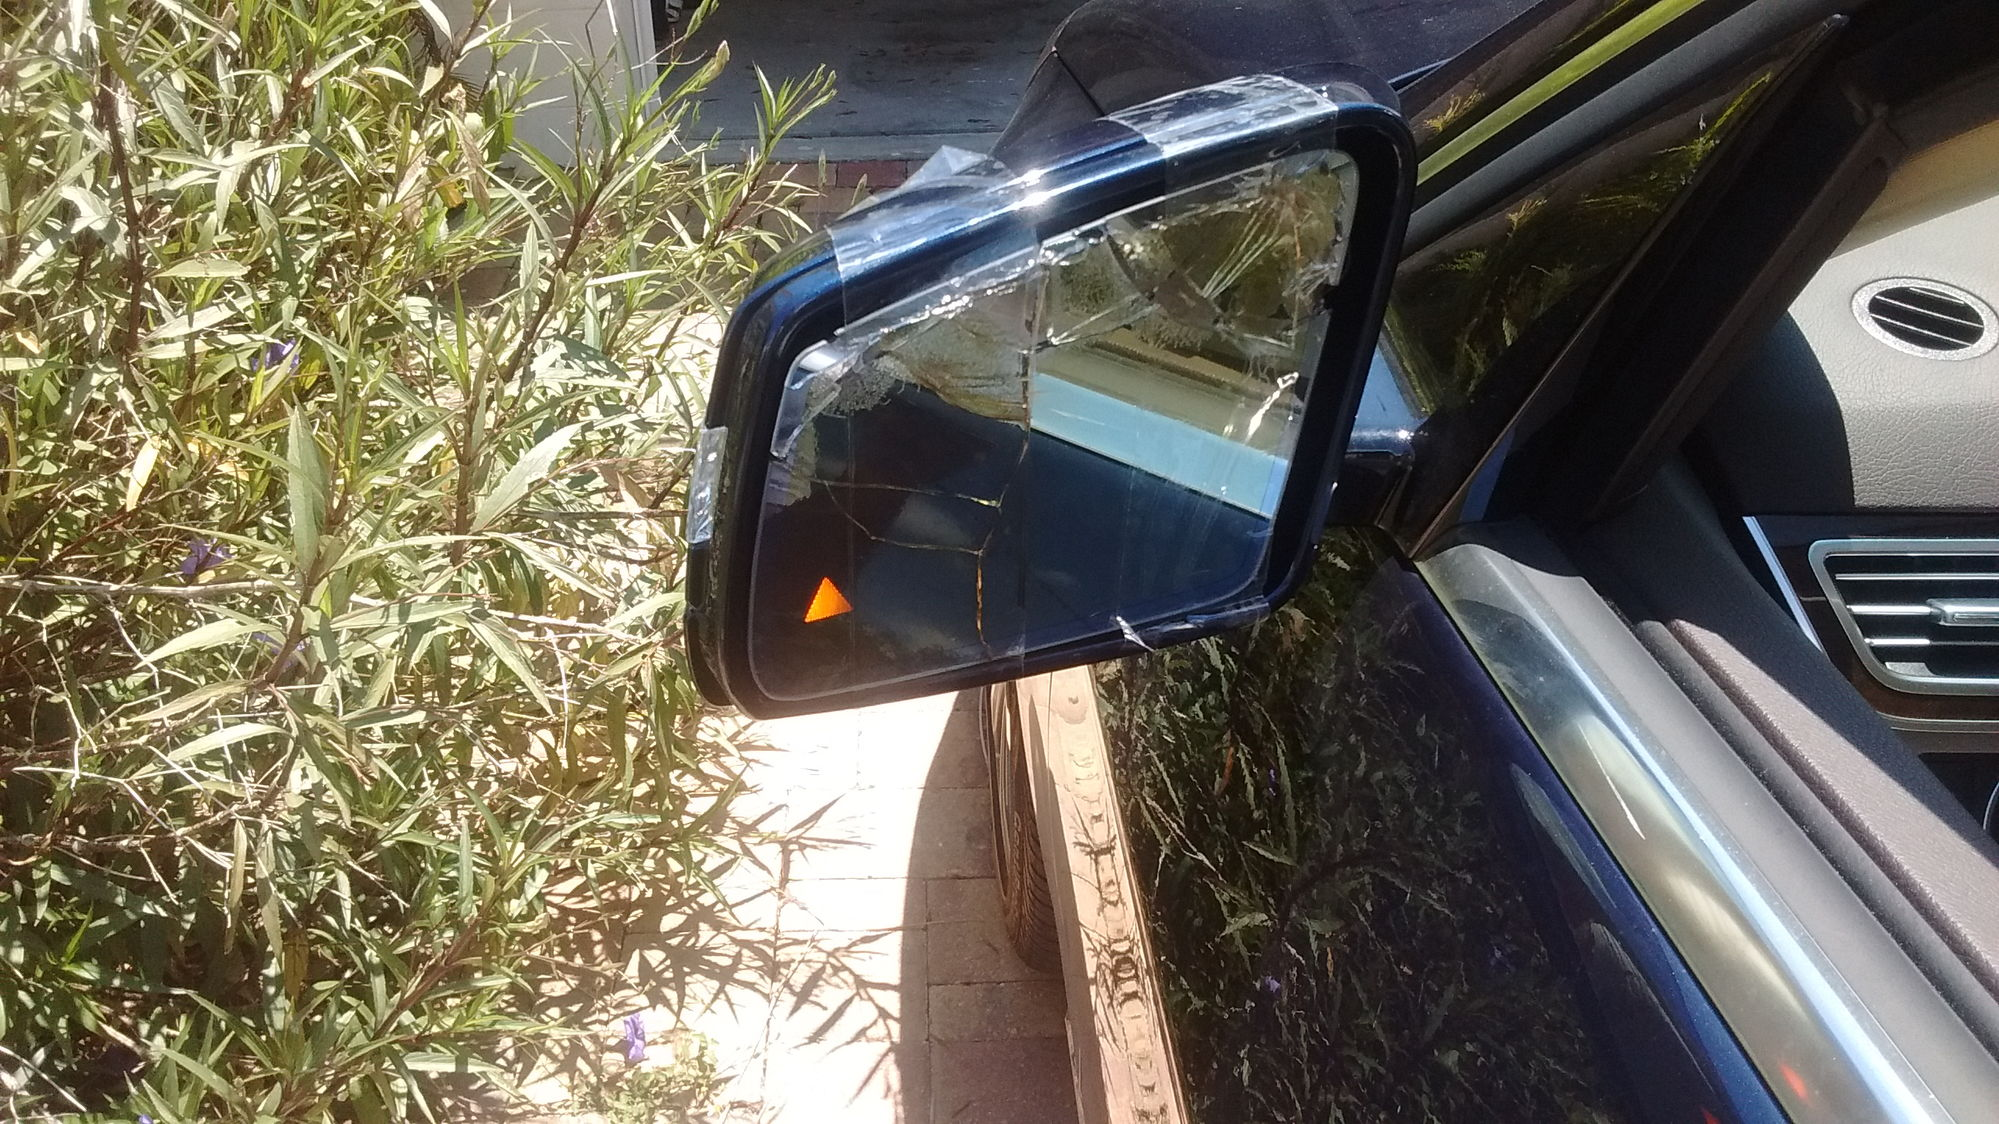 Side Mirror Folding Mechanism And Glass As The Left Is Damaged